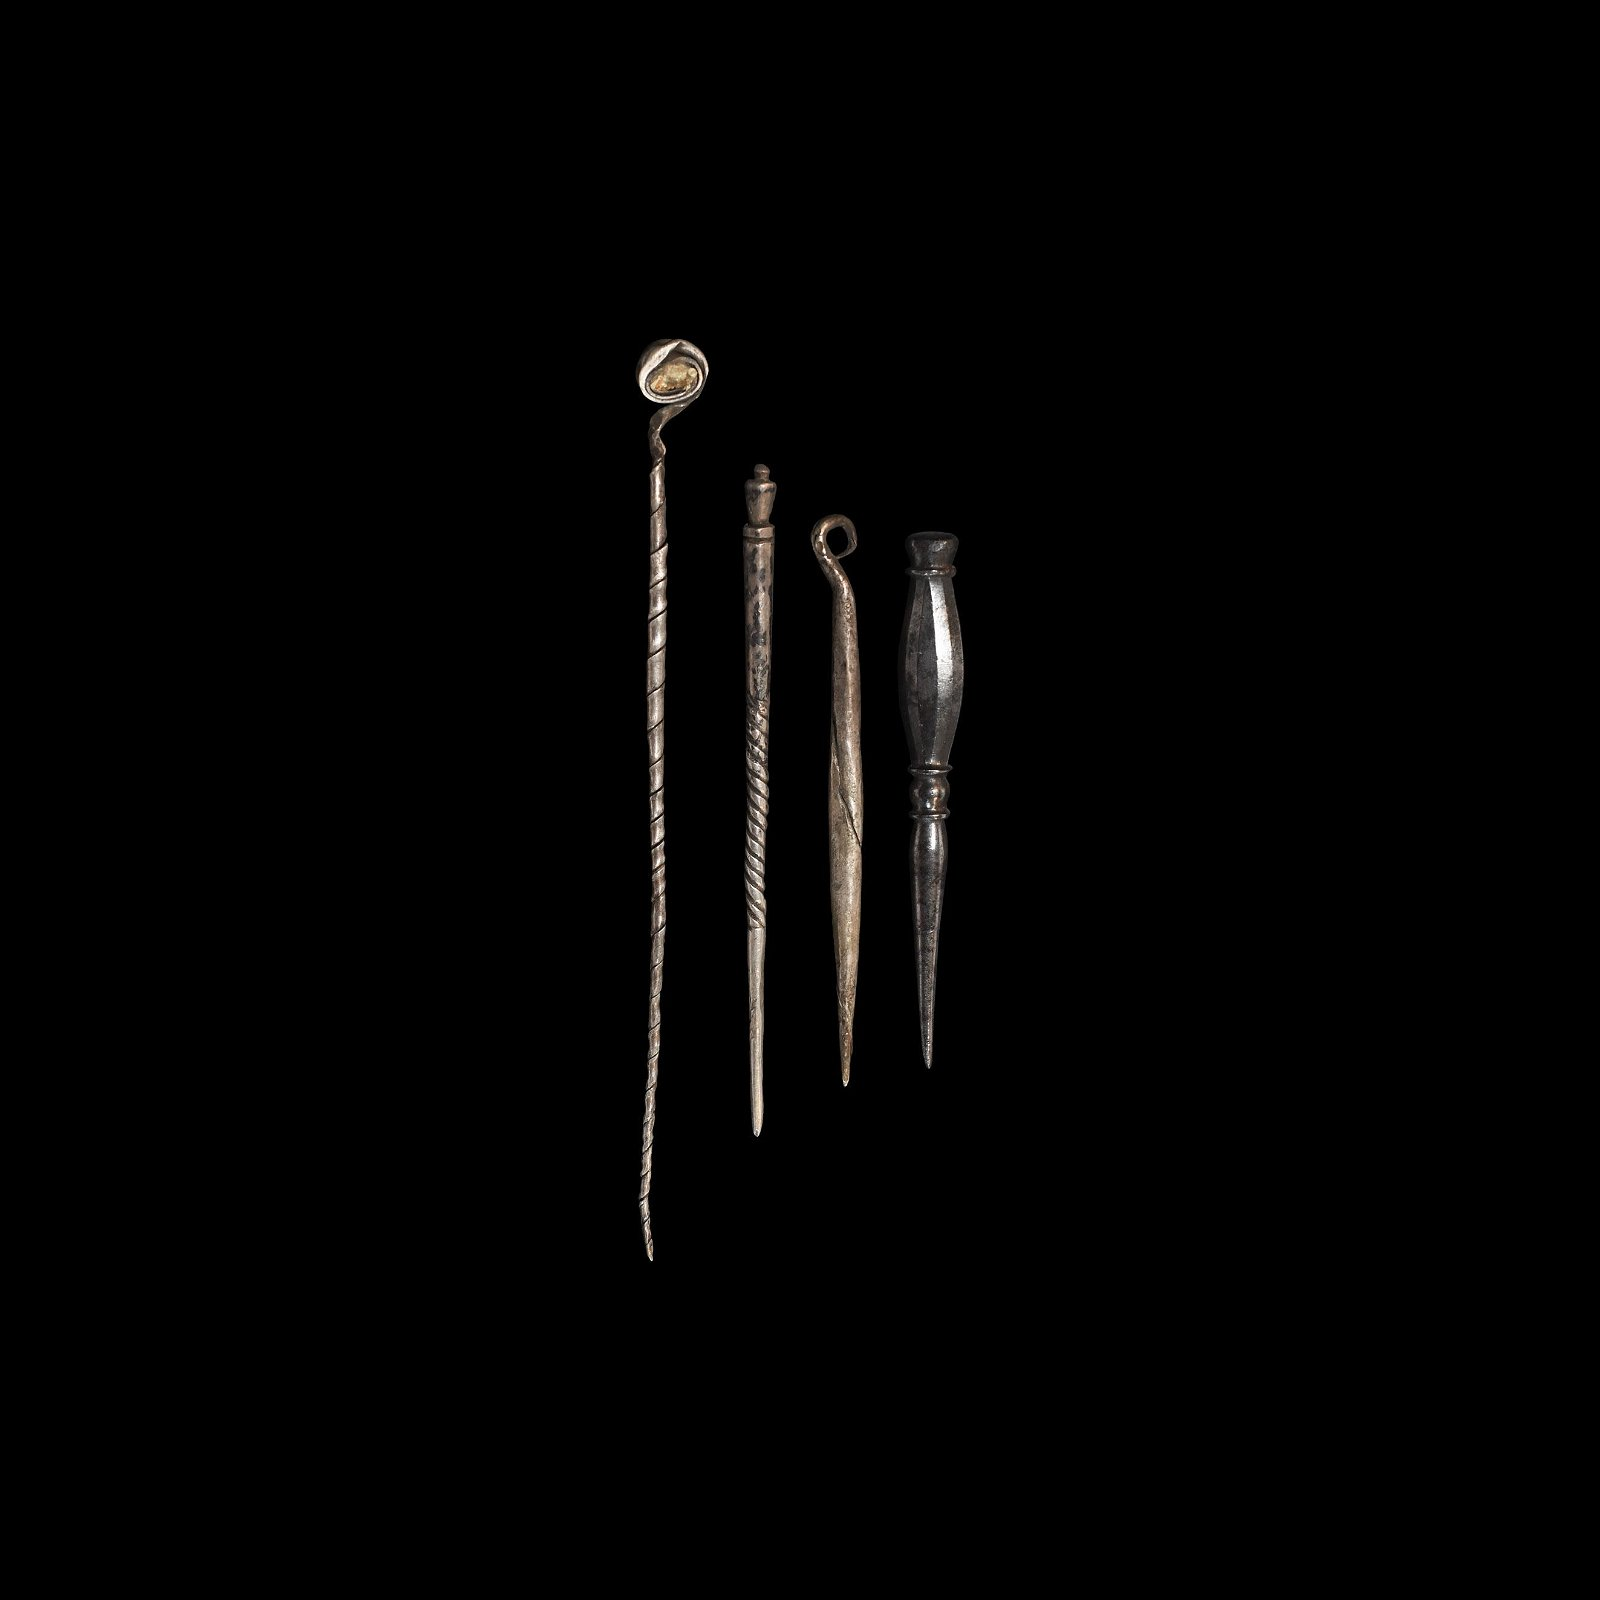 Roman Silver Stylus and Pin Collection